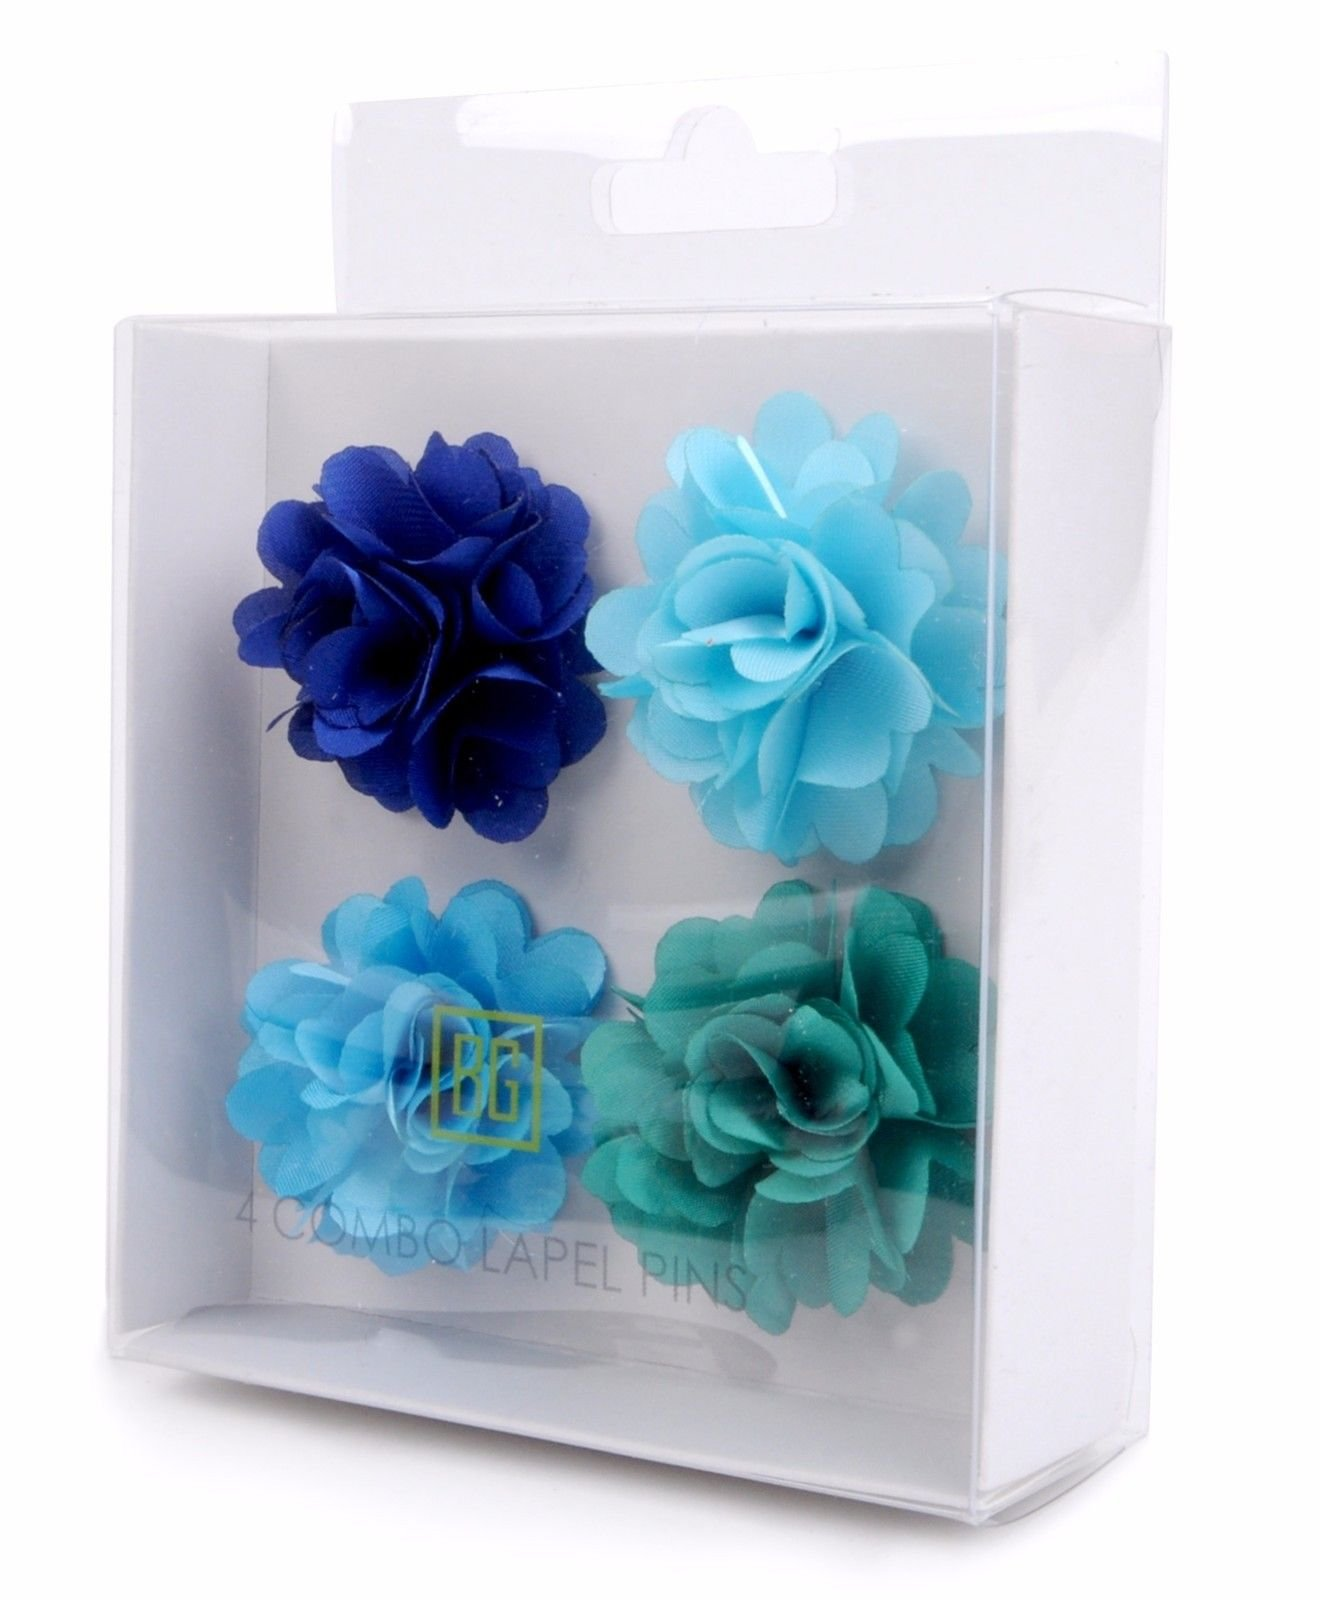 BG-Mini-Bouquet-Clutch-Back-Flower-Tuxedo-Suit-Lapel-Pins-Boutonniere-4-Pack-Set thumbnail 26